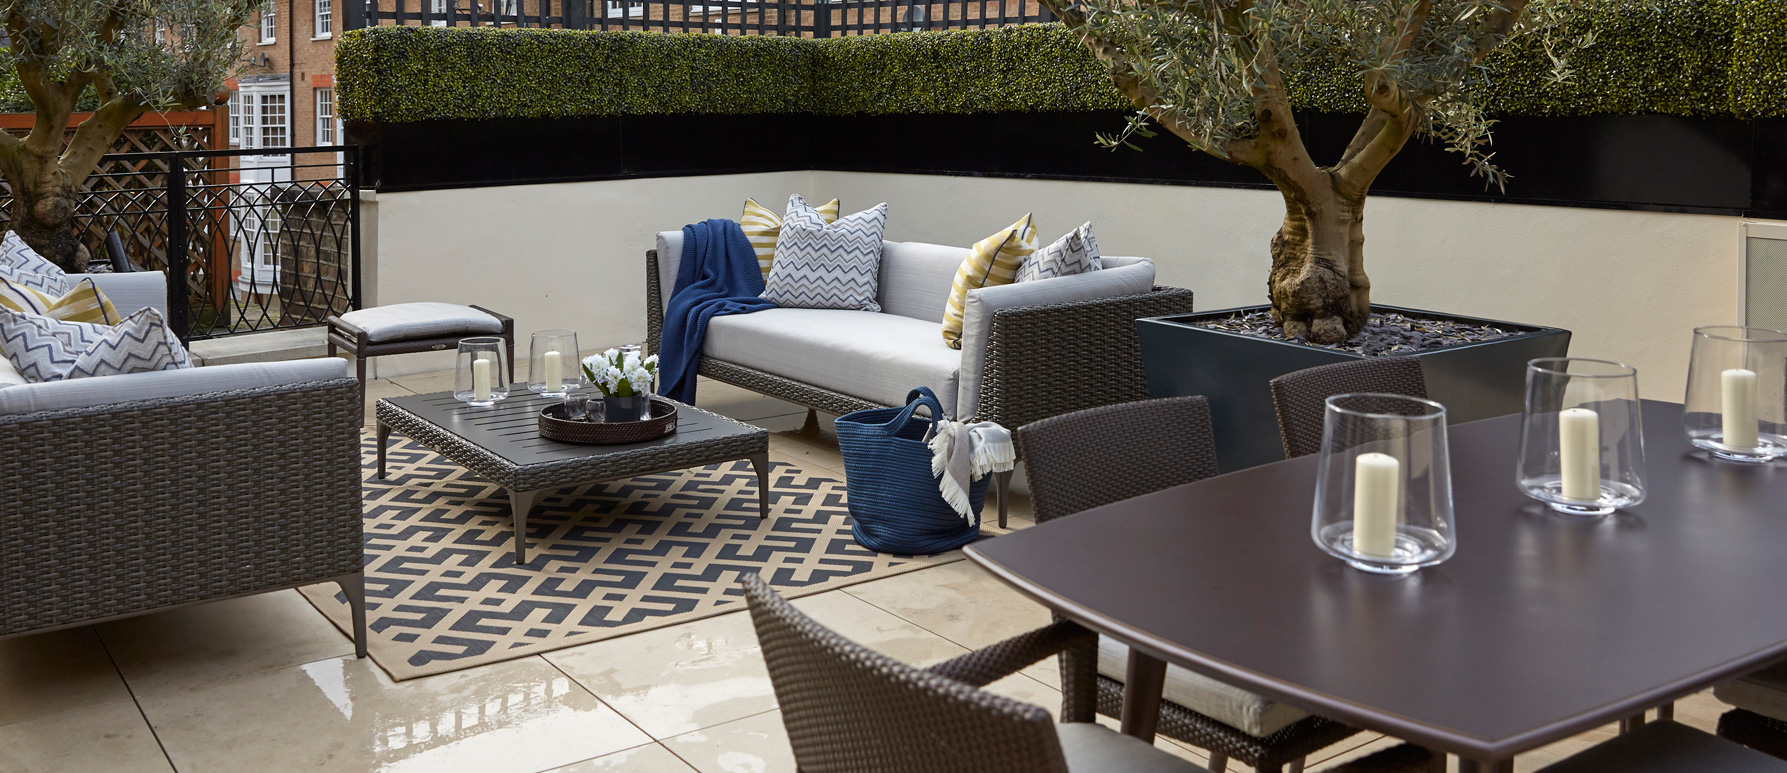 The outdoor terrace uses weather proof furniture and outdoor rugs